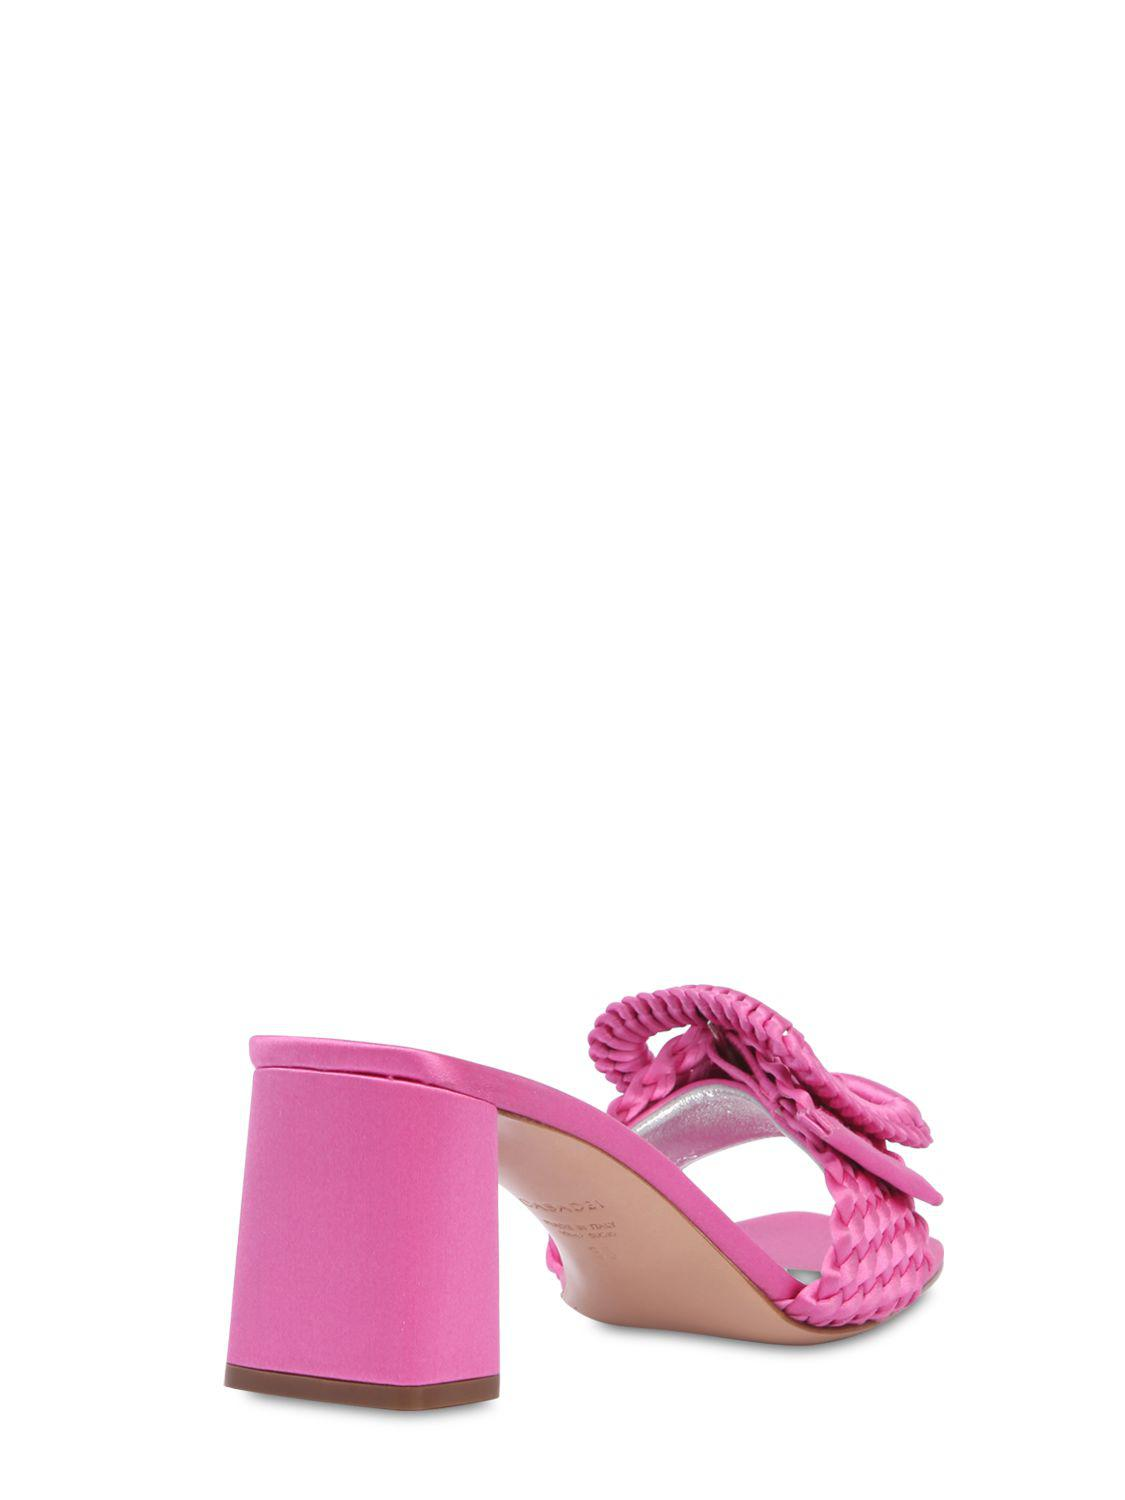 Casadei 60MM BUCKLED WOVEN SATIN MULE SANDALS CAZS8